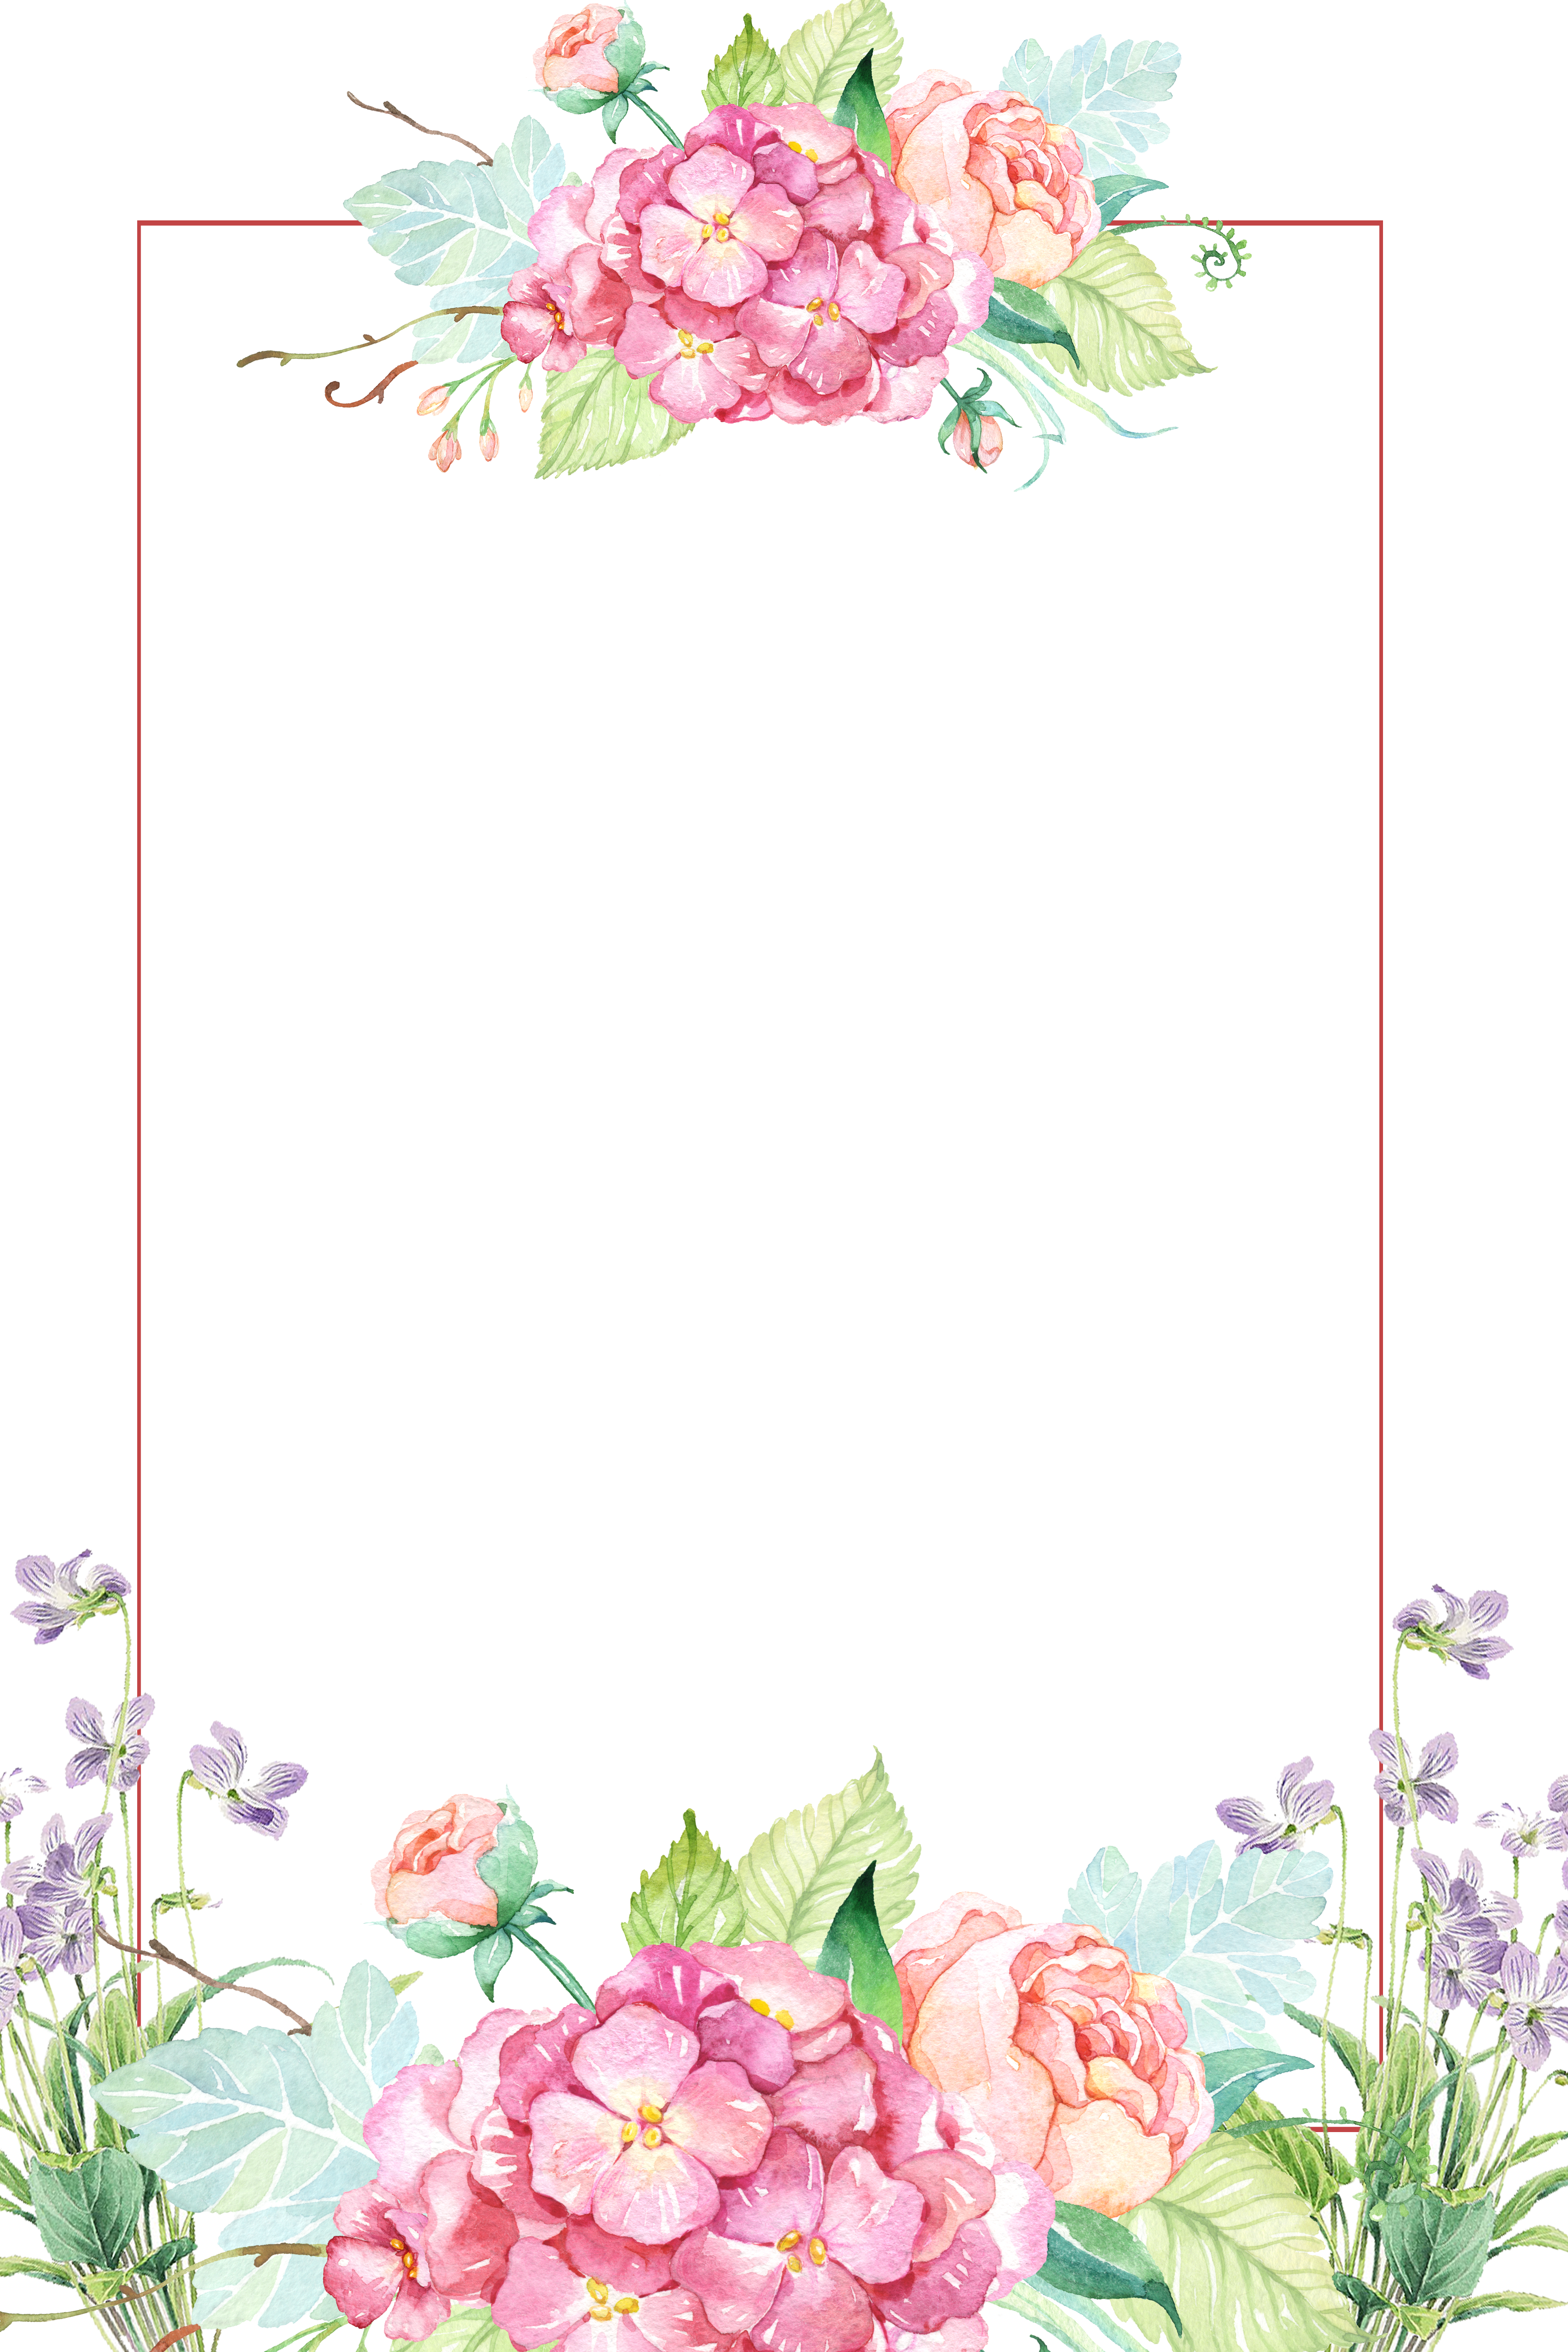 Flower Clip Art Beautiful Flower Borders 3543 5315 Transprent Png Free Download Pink Picture Frame Pla Flower Painting Flower Border Hand Painted Flowers